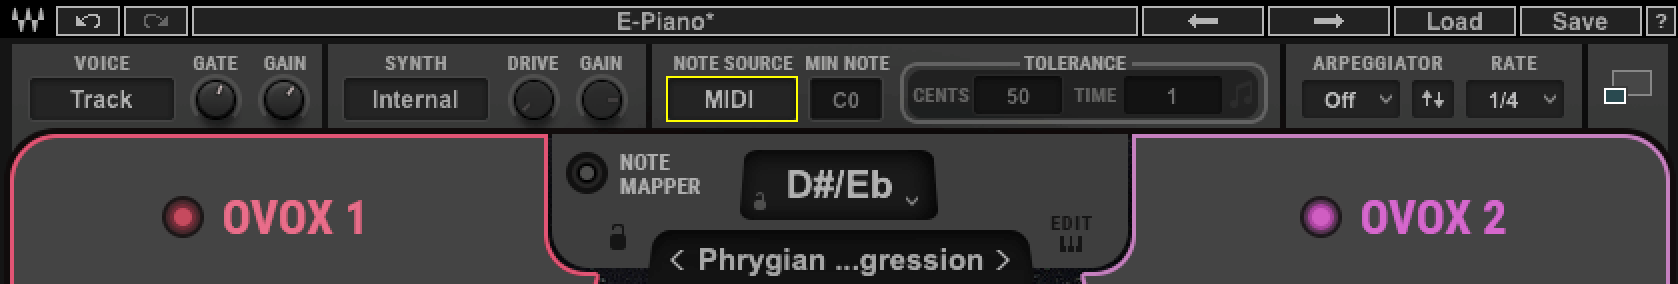 Inside OVox, make sure 'Note Source' is set to Auto or MIDI.